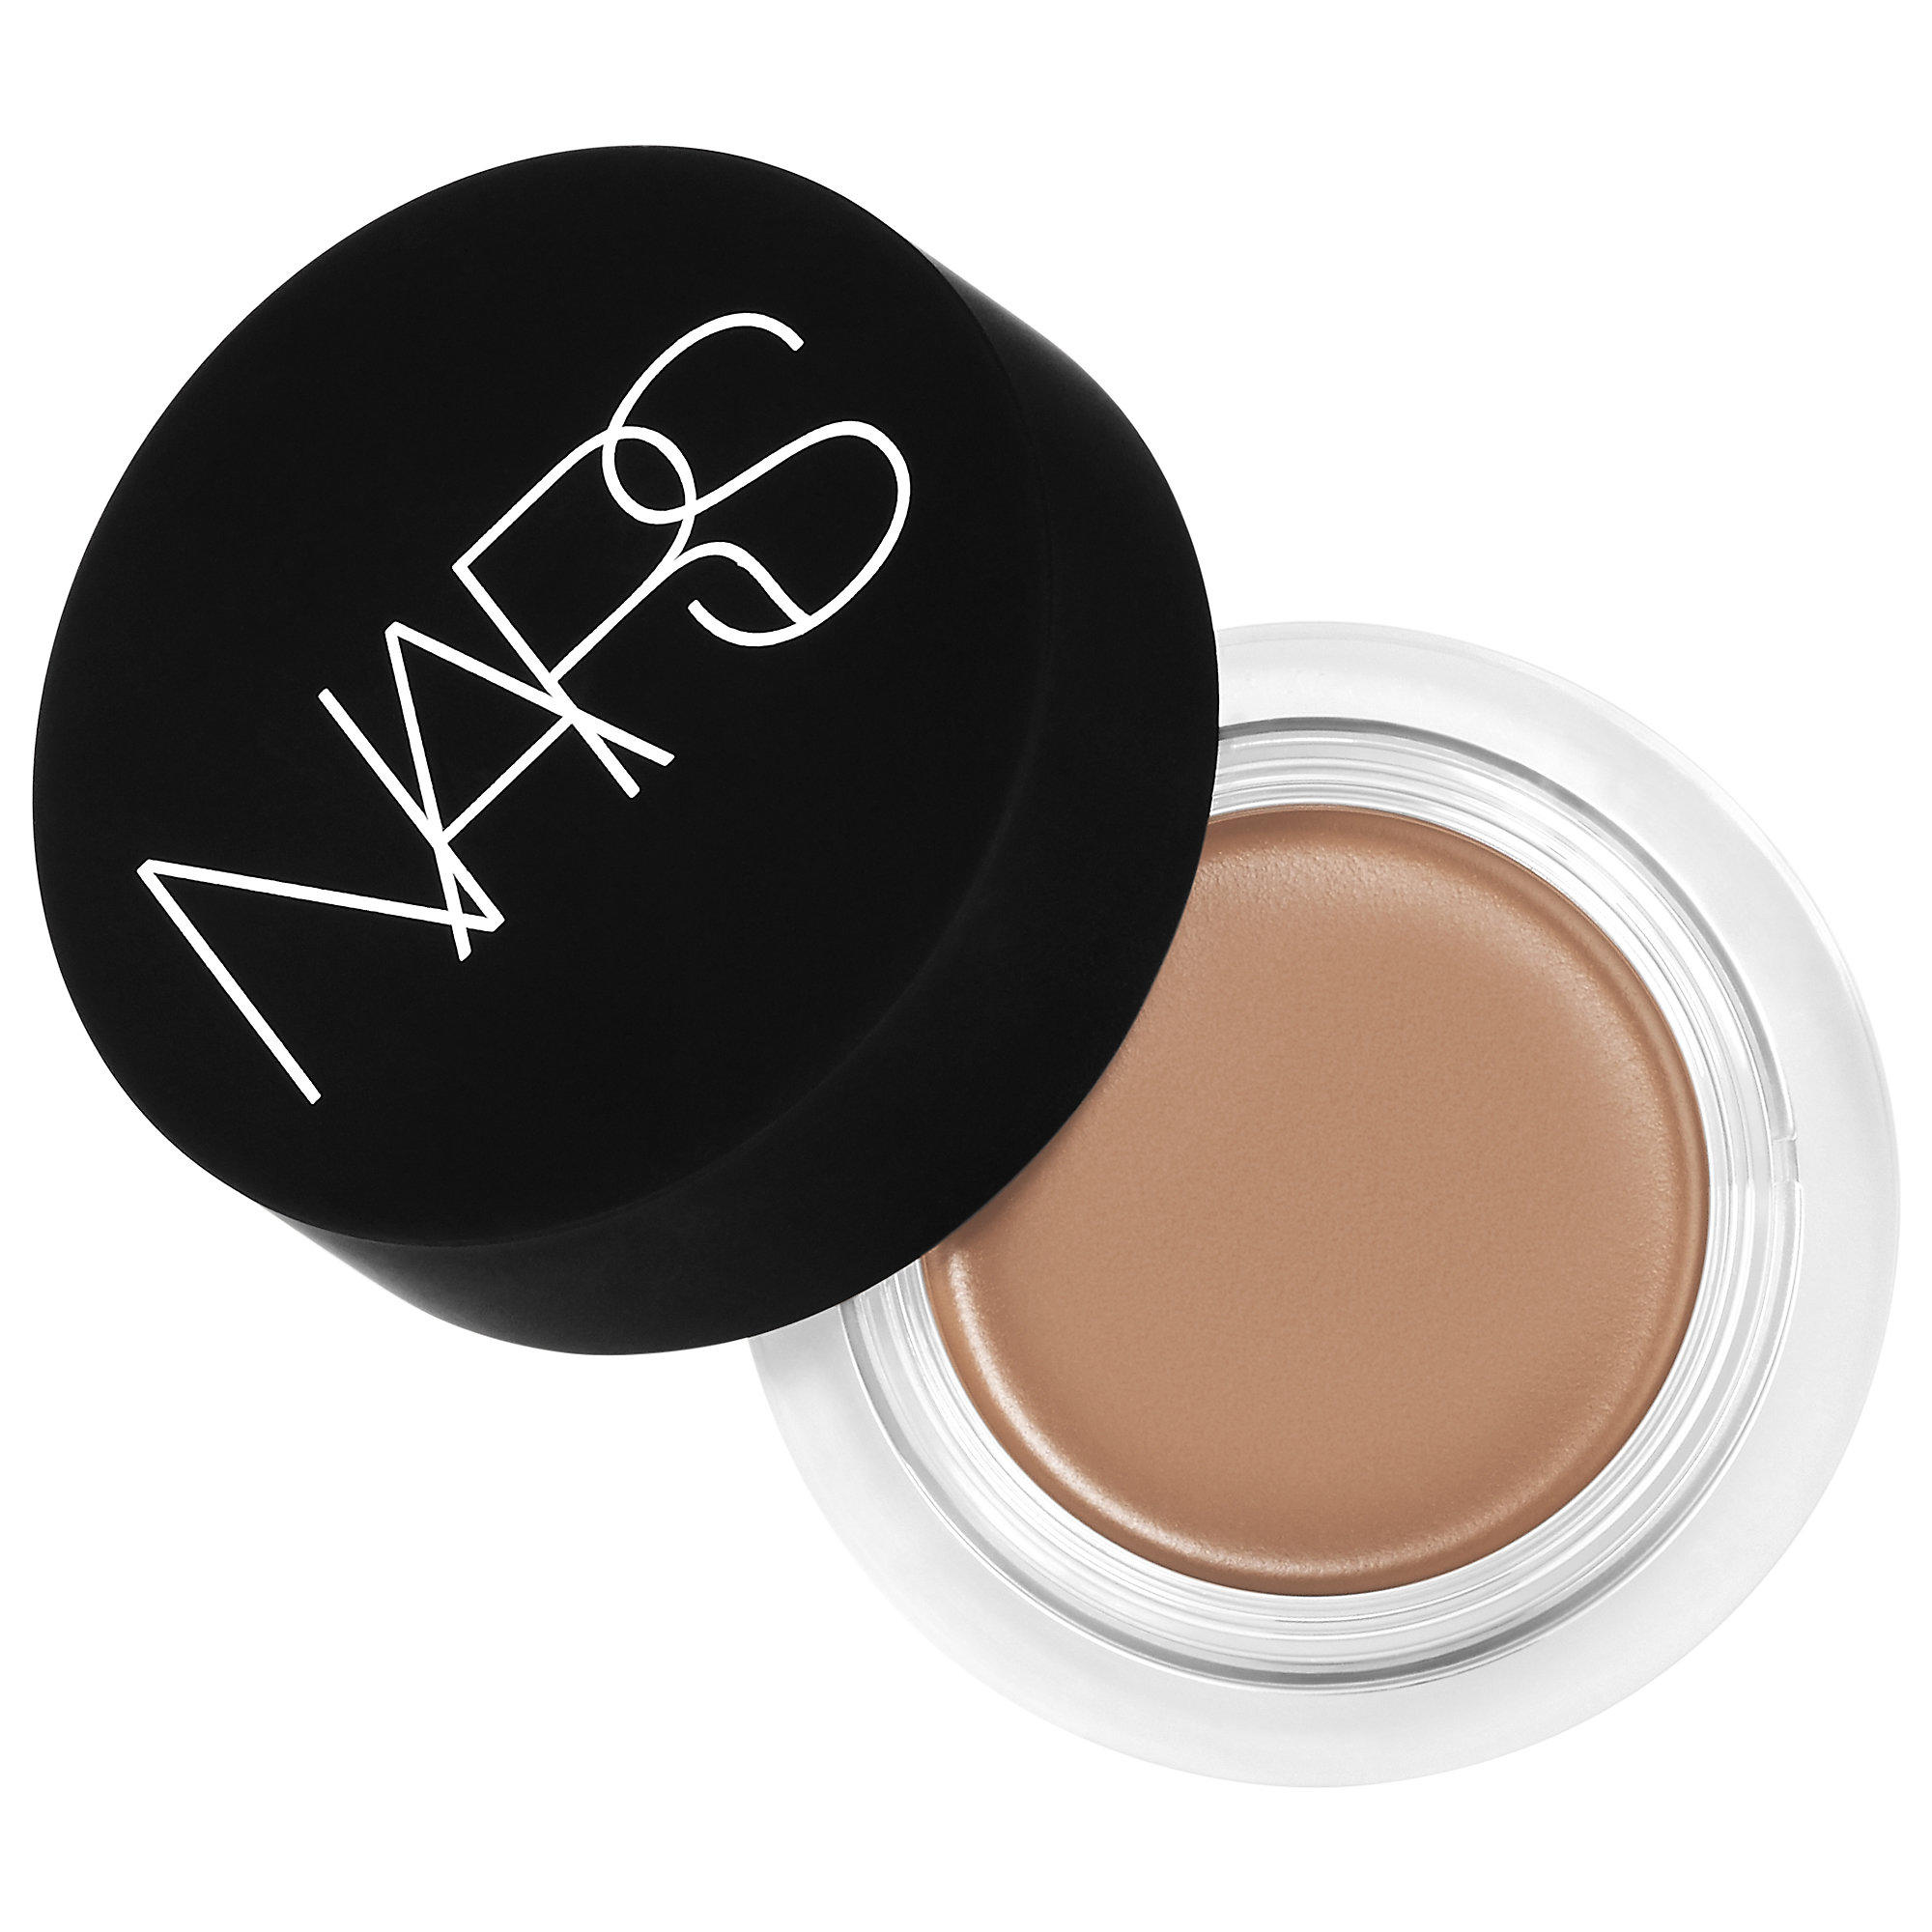 NARS Soft Matte Complete Concealer Chestnut Medium Dark 2.5